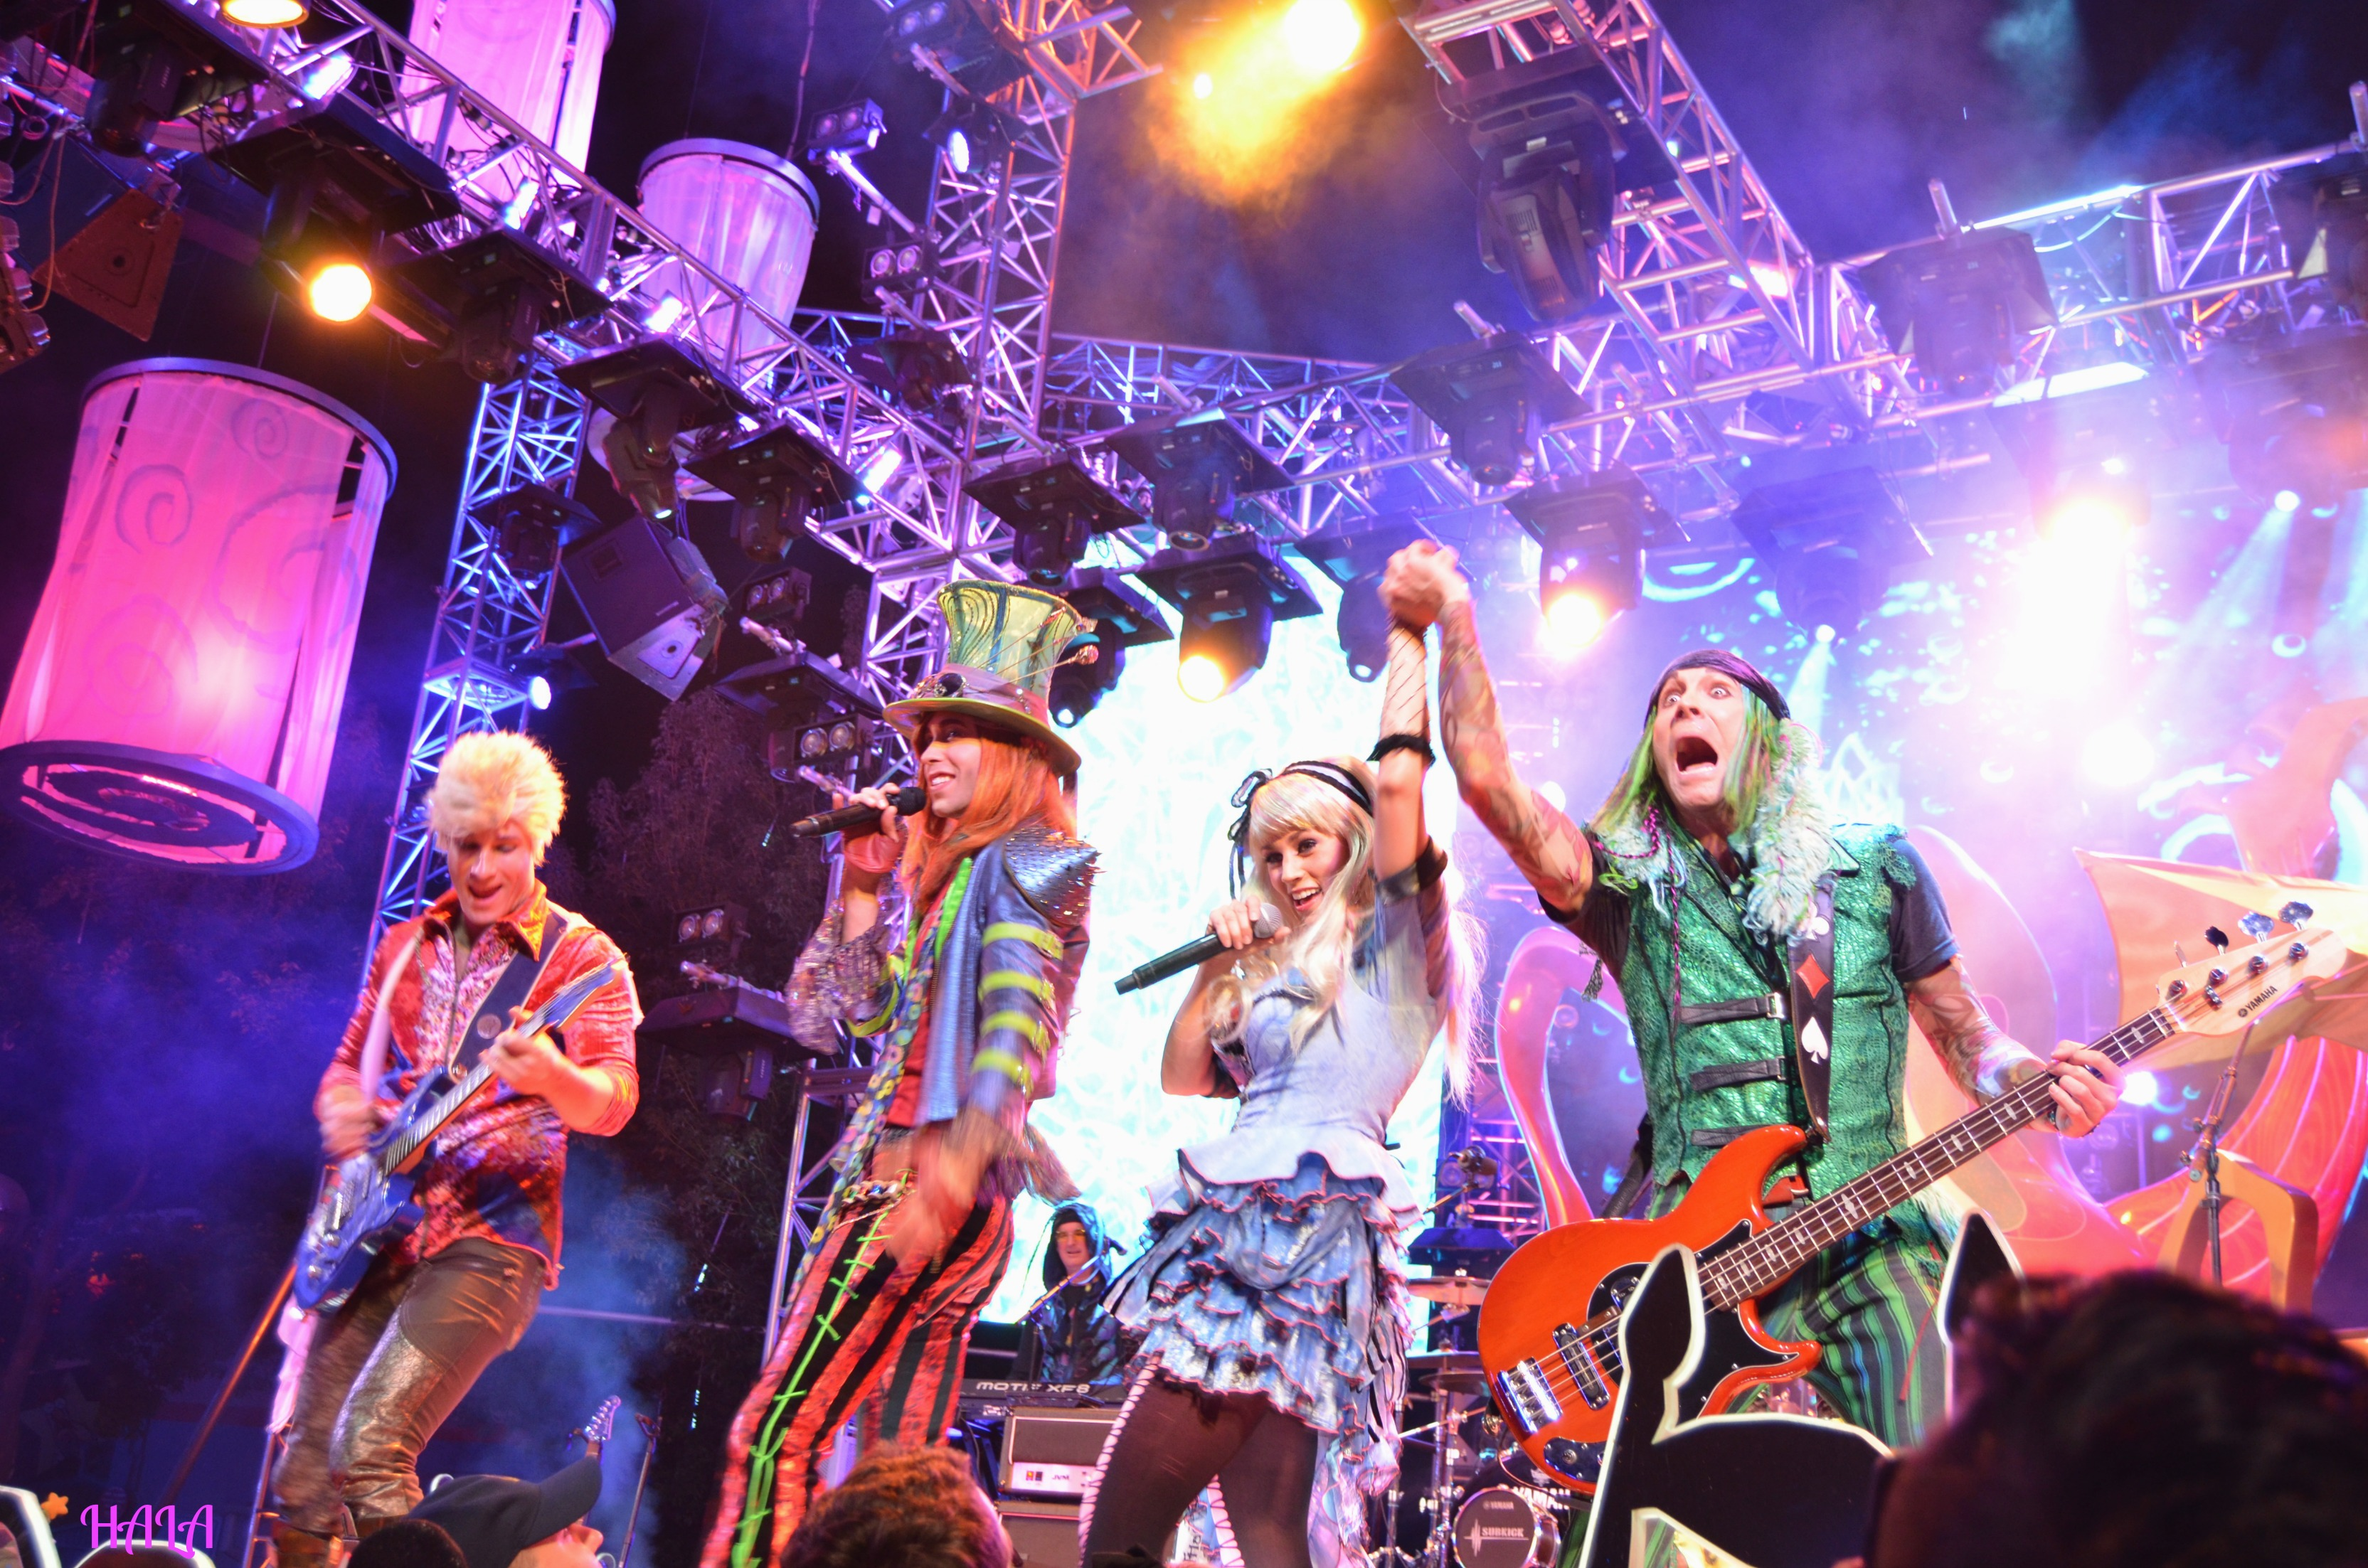 mad t party setlist 2015